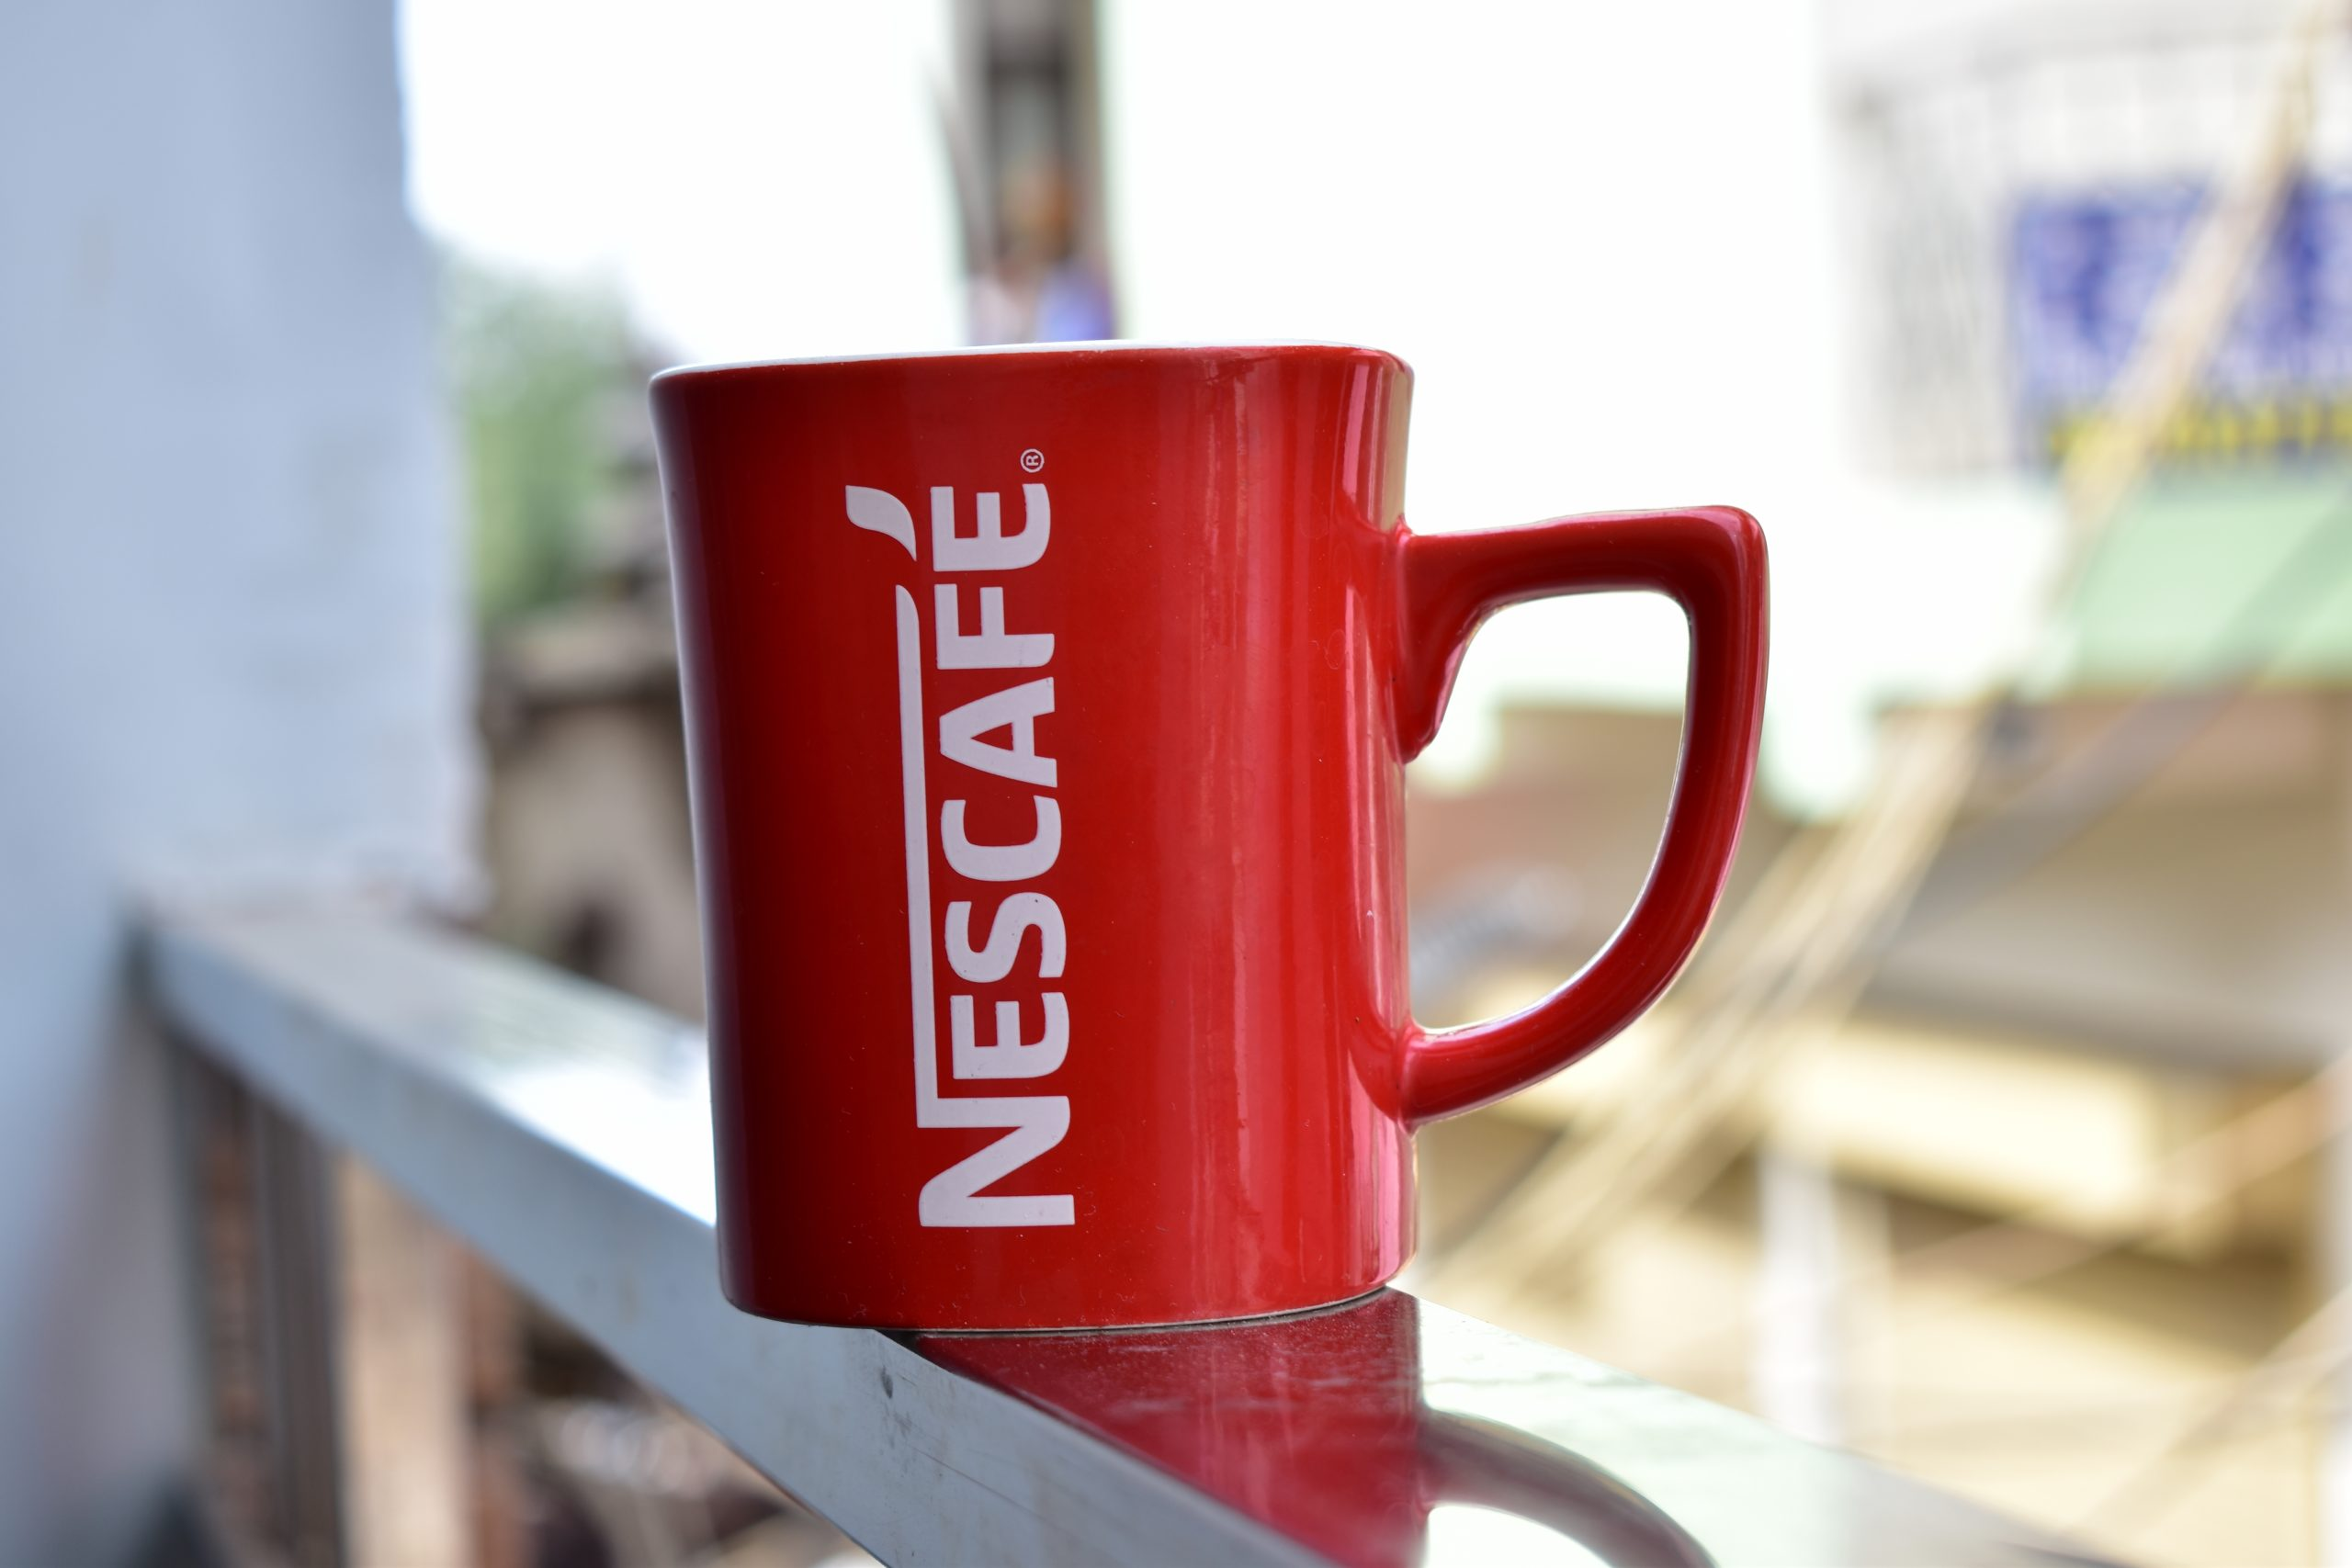 Red Nescafe cup on a ledge